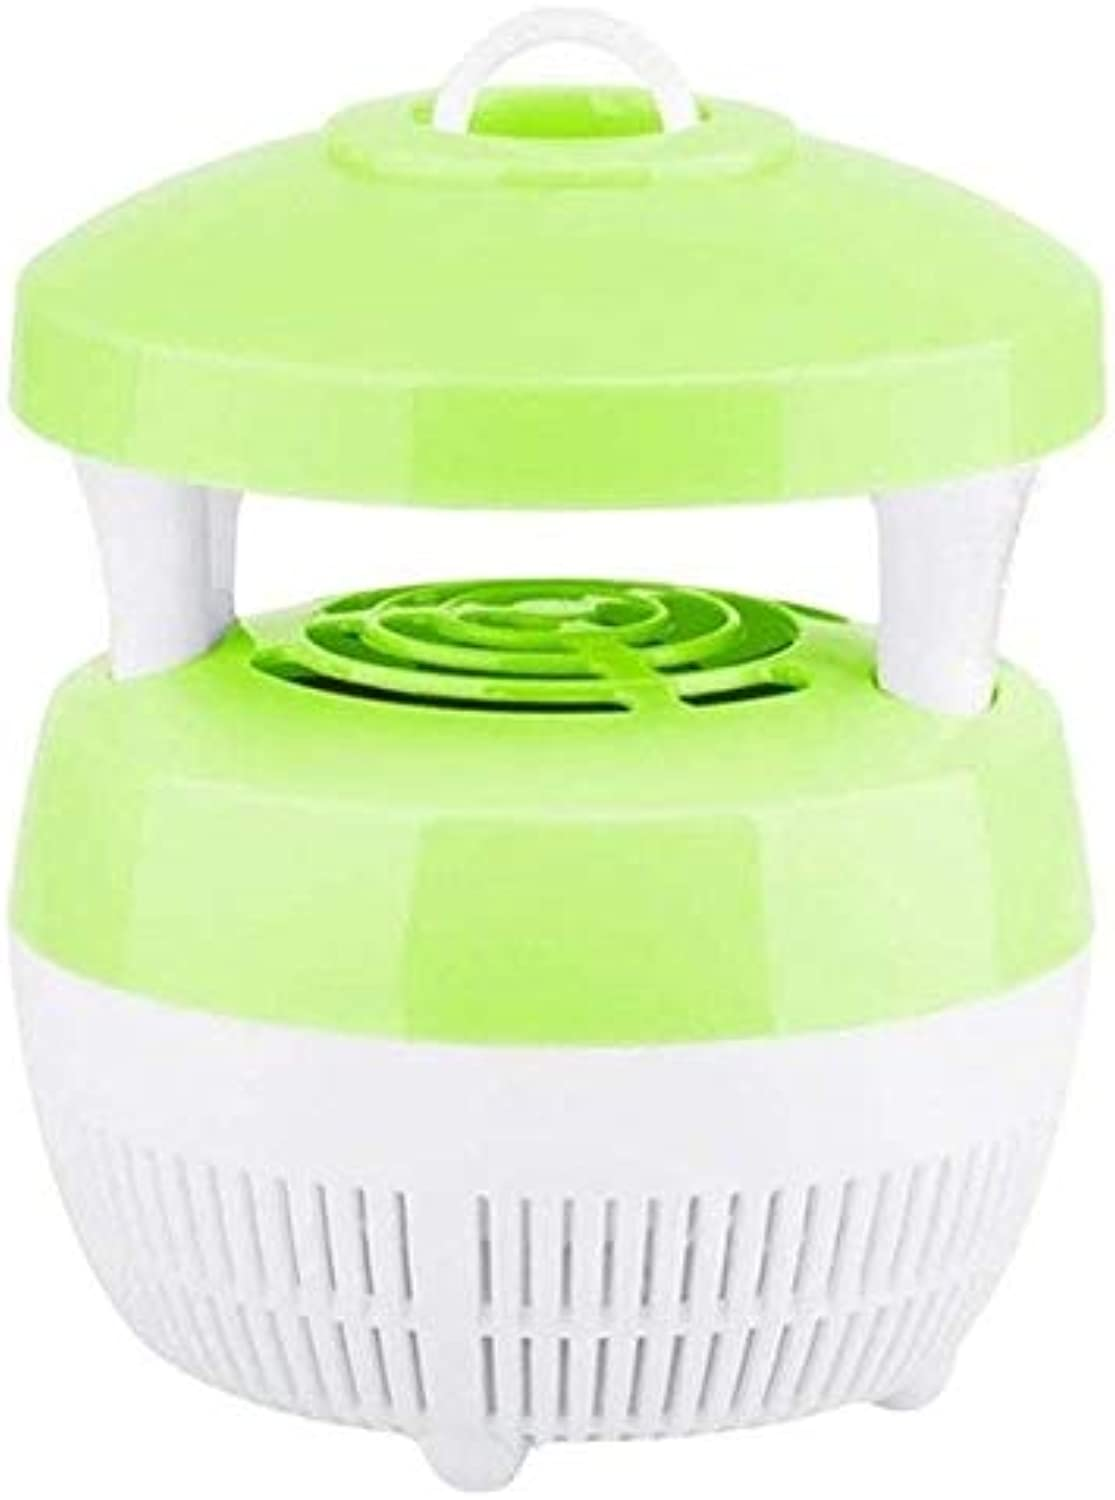 Household Mute USB Mosquito Killer UV LED Lamp Zapper Night Light Photocatalyst Inhalant Mosquitos Trap Bug Pest Control   Green